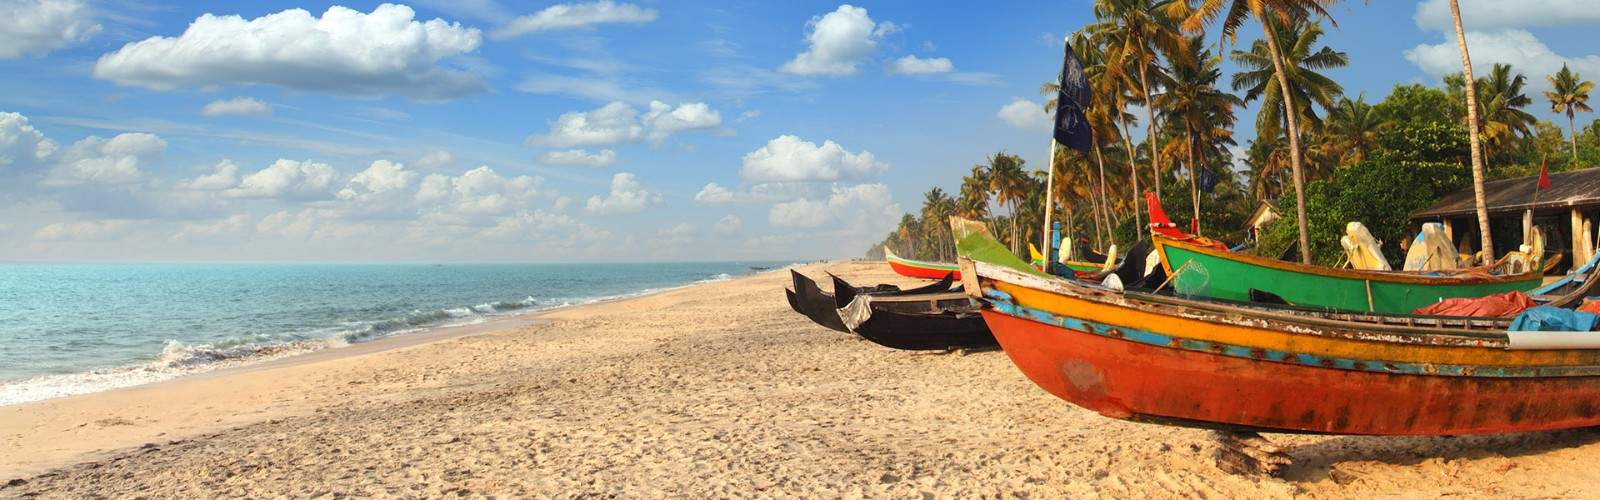 Kerala Backwaters and Beach Tour | Wendy Wu Tours